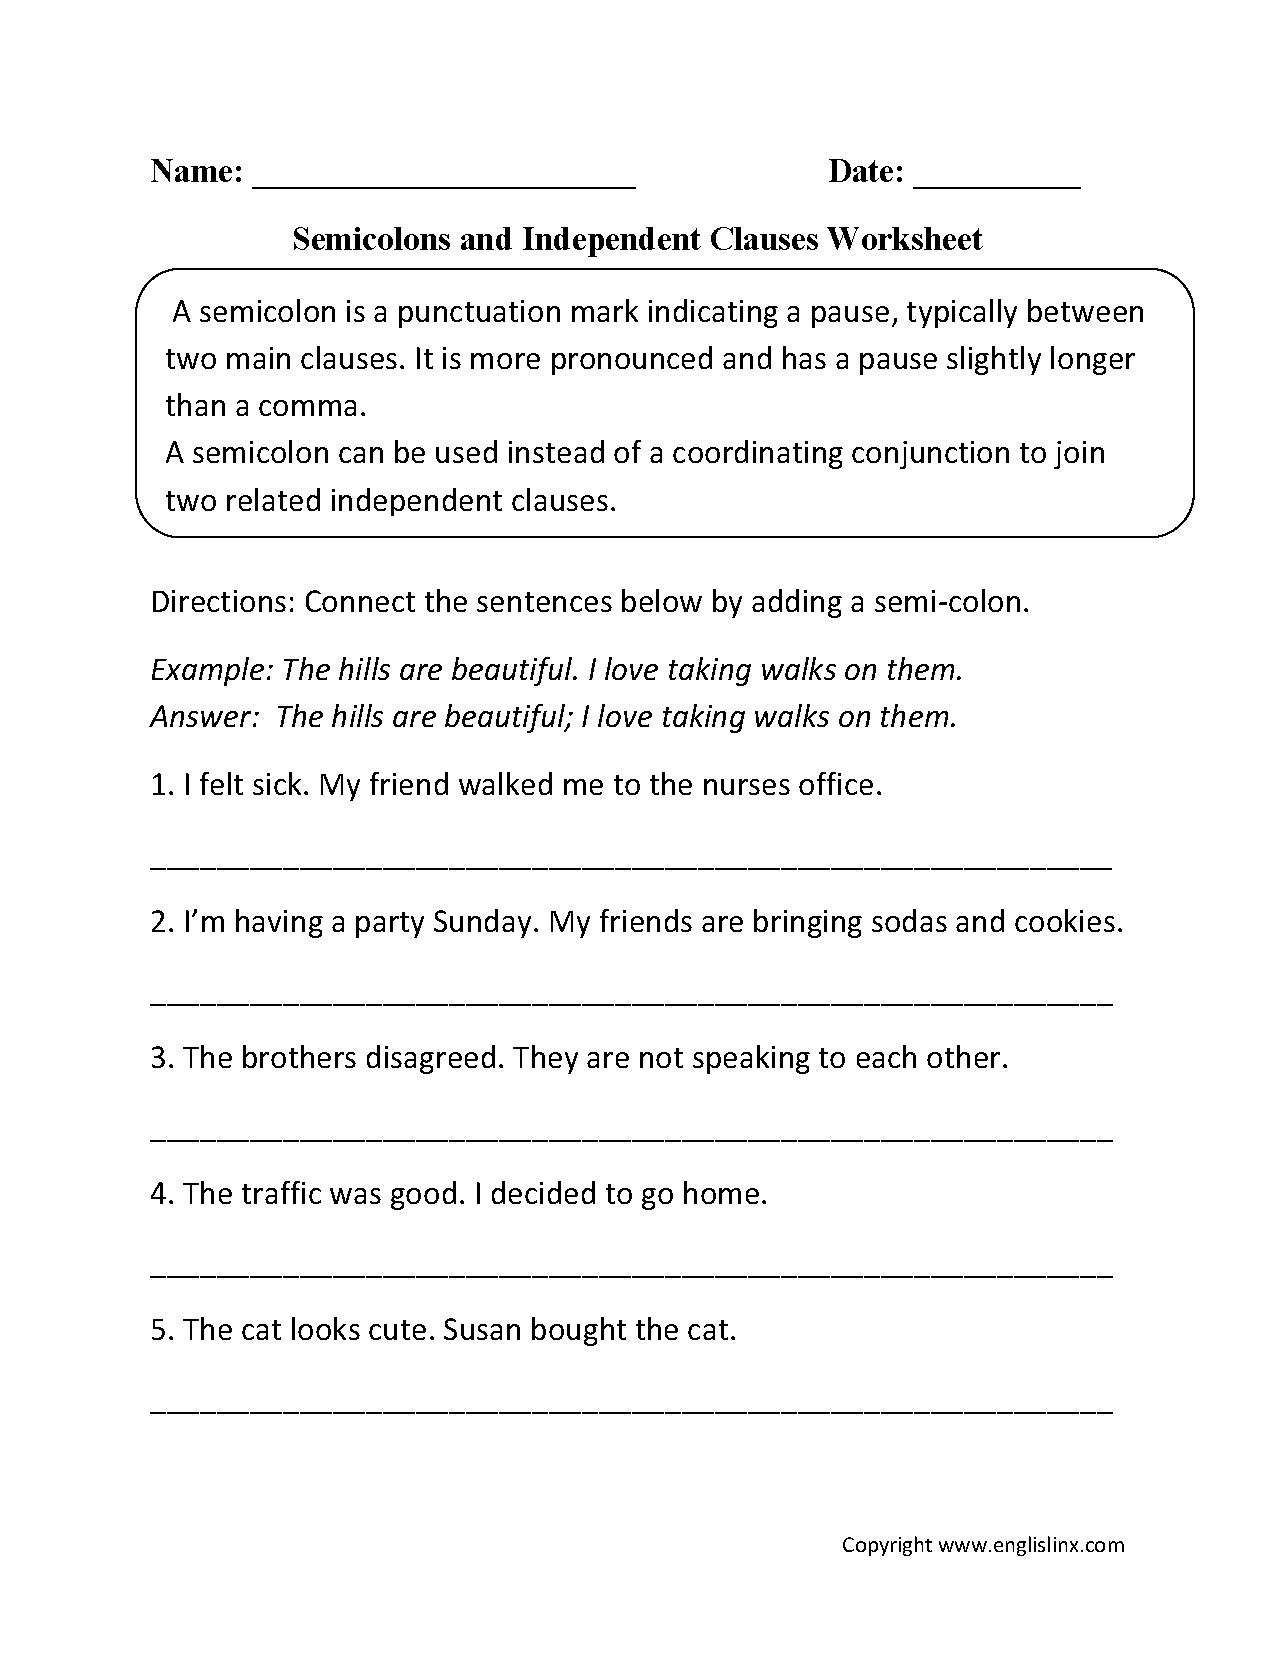 Worksheets Semicolon Worksheets punctuation worksheets semicolon and independent clause worksheet